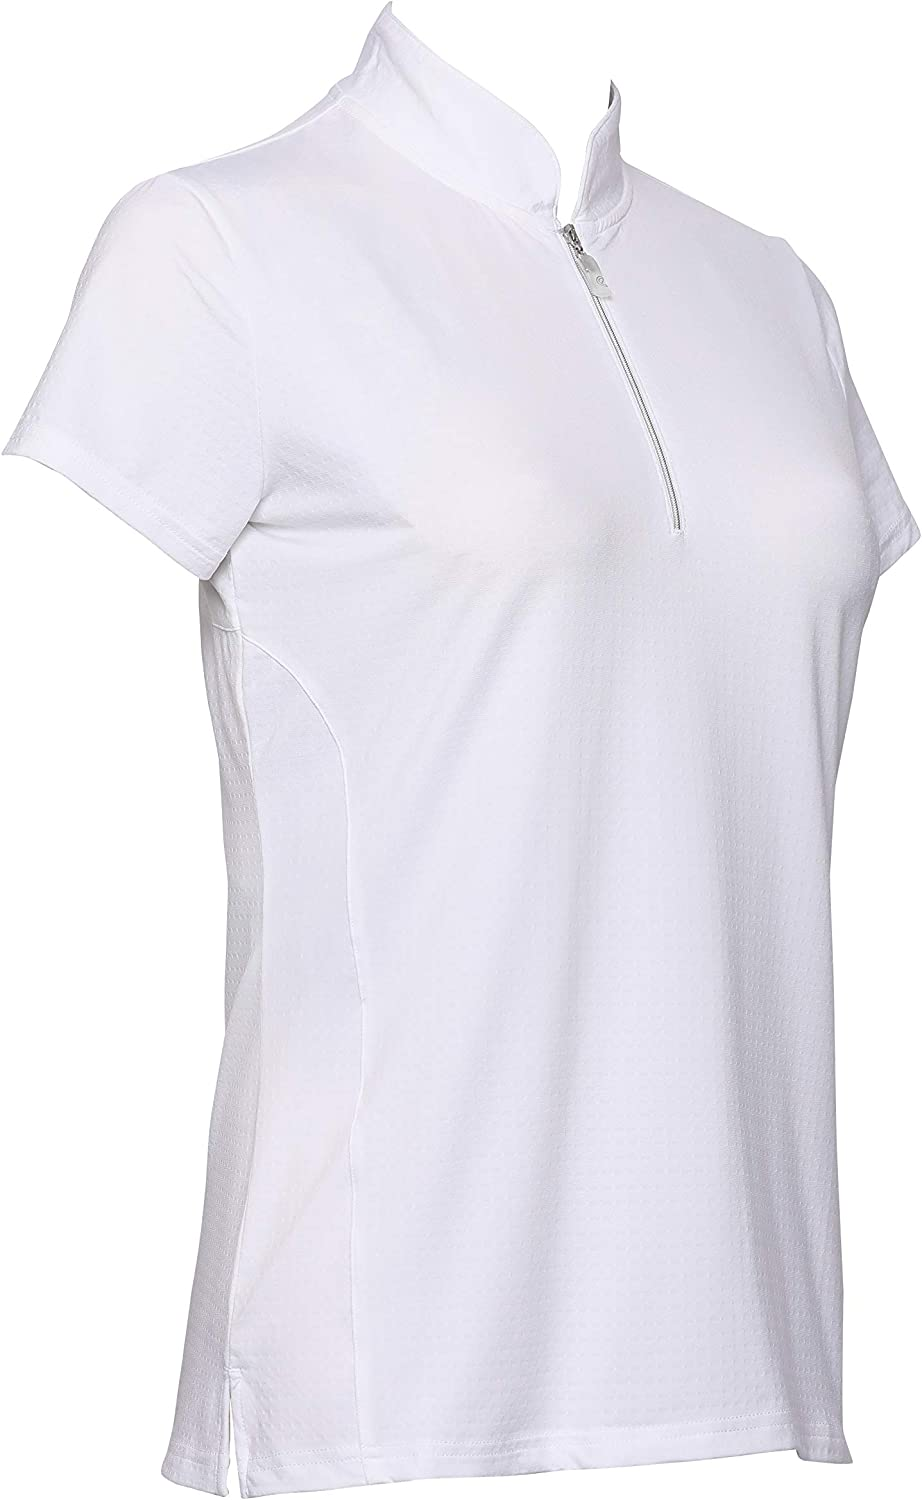 Bette & Court Women's Short Sleeve Solid Polo With Petal Collar White